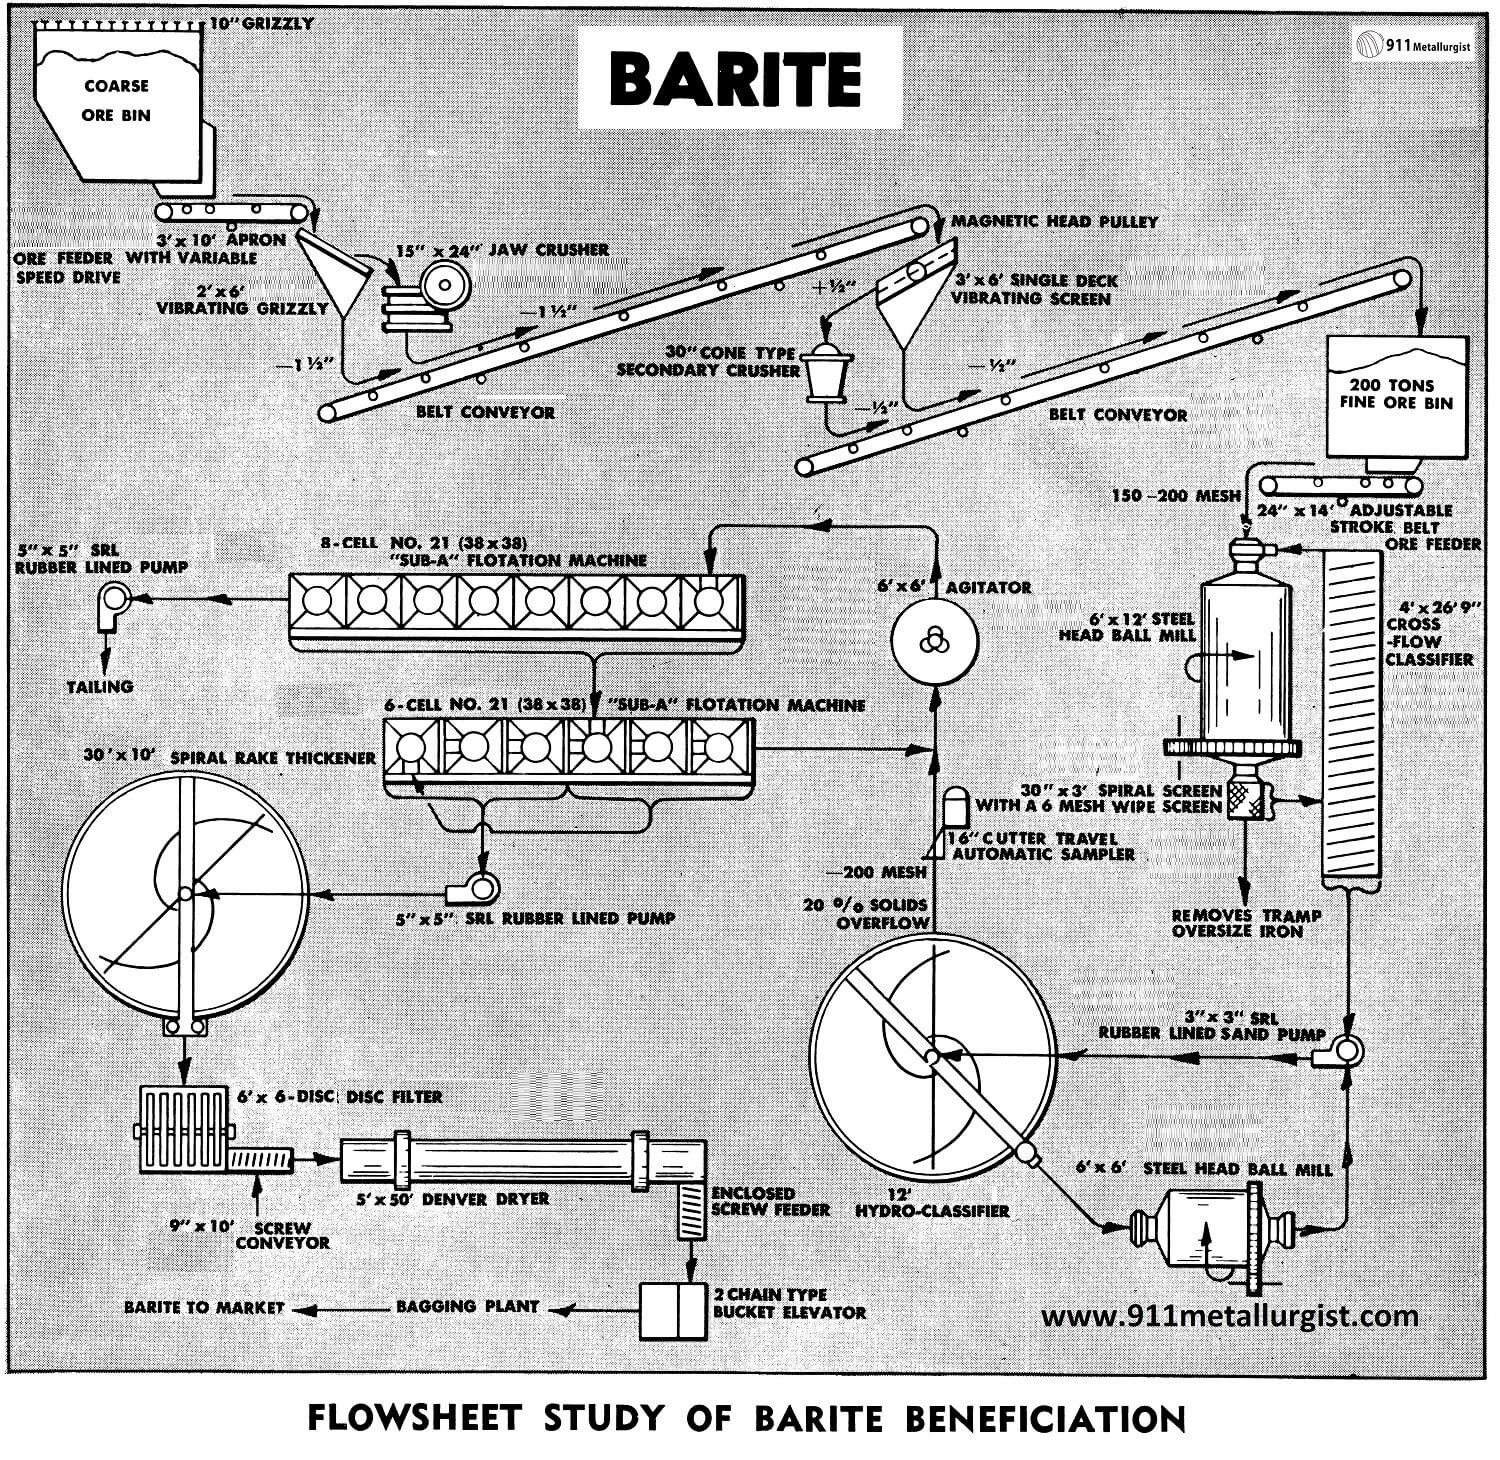 Barite Beneficiation Process and Plant Flowsheet